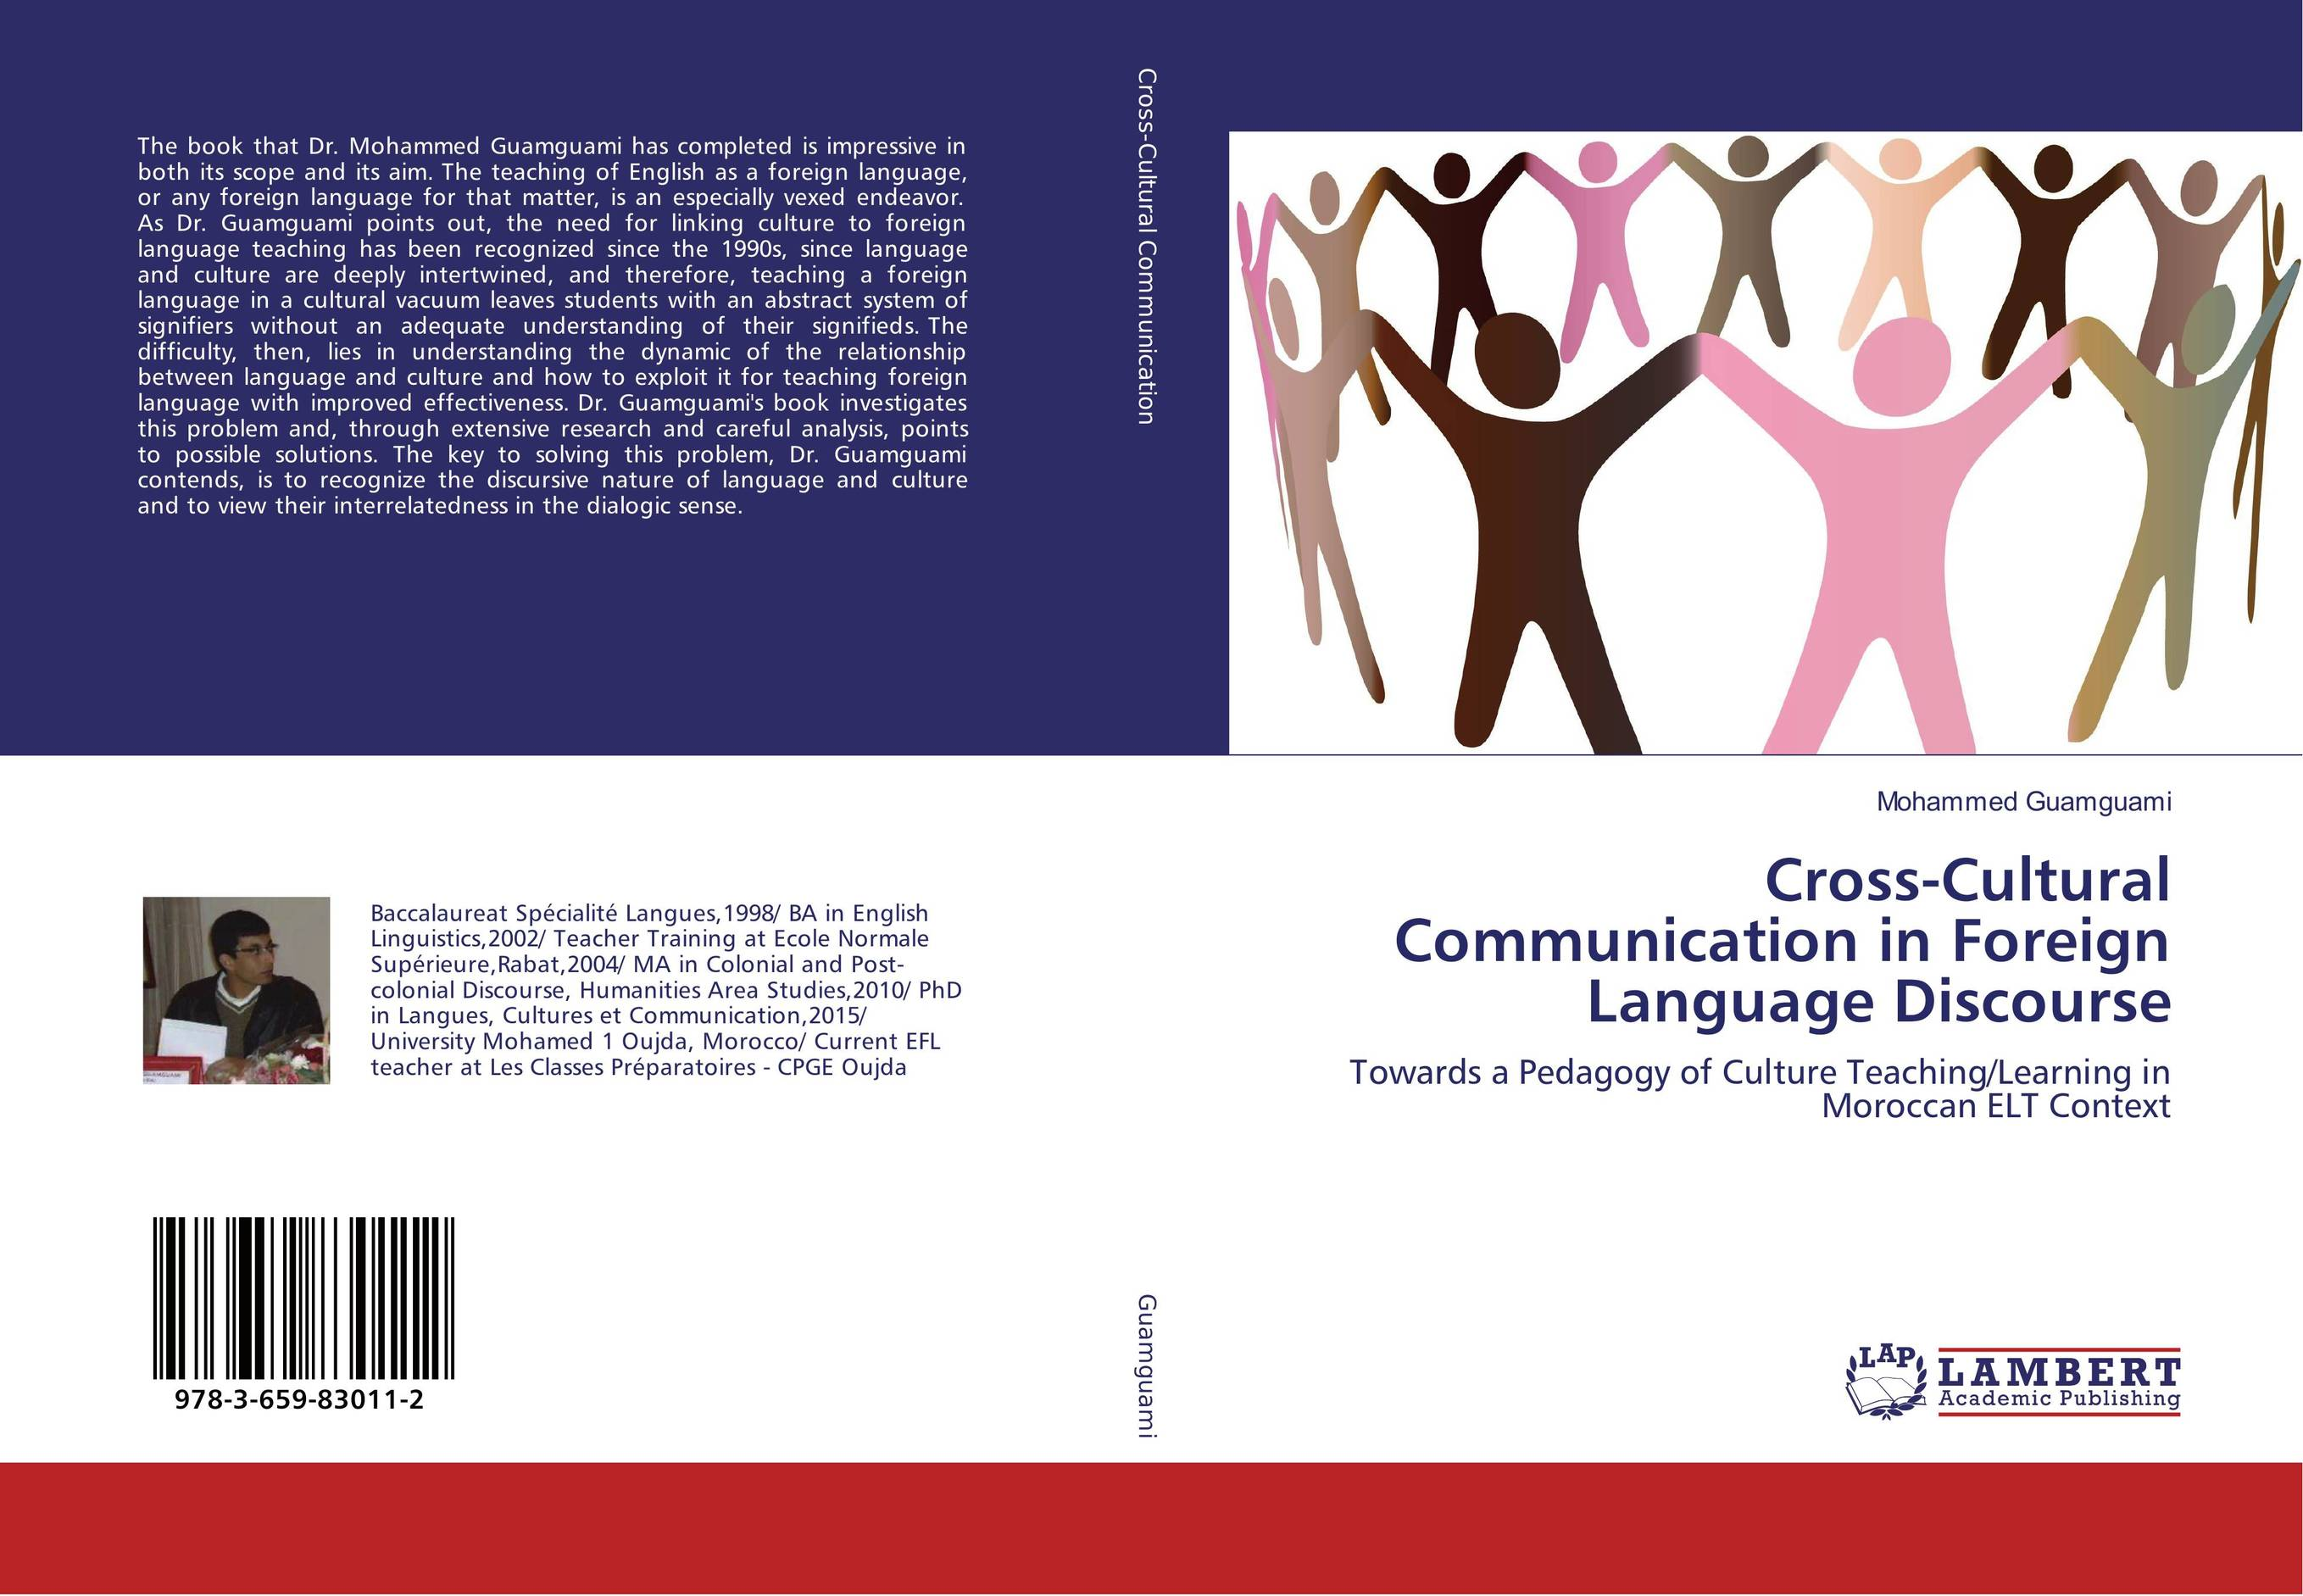 Cross-Cultural Communication in Foreign Language Discourse the role of ict in the teaching of english as a foreign language efl